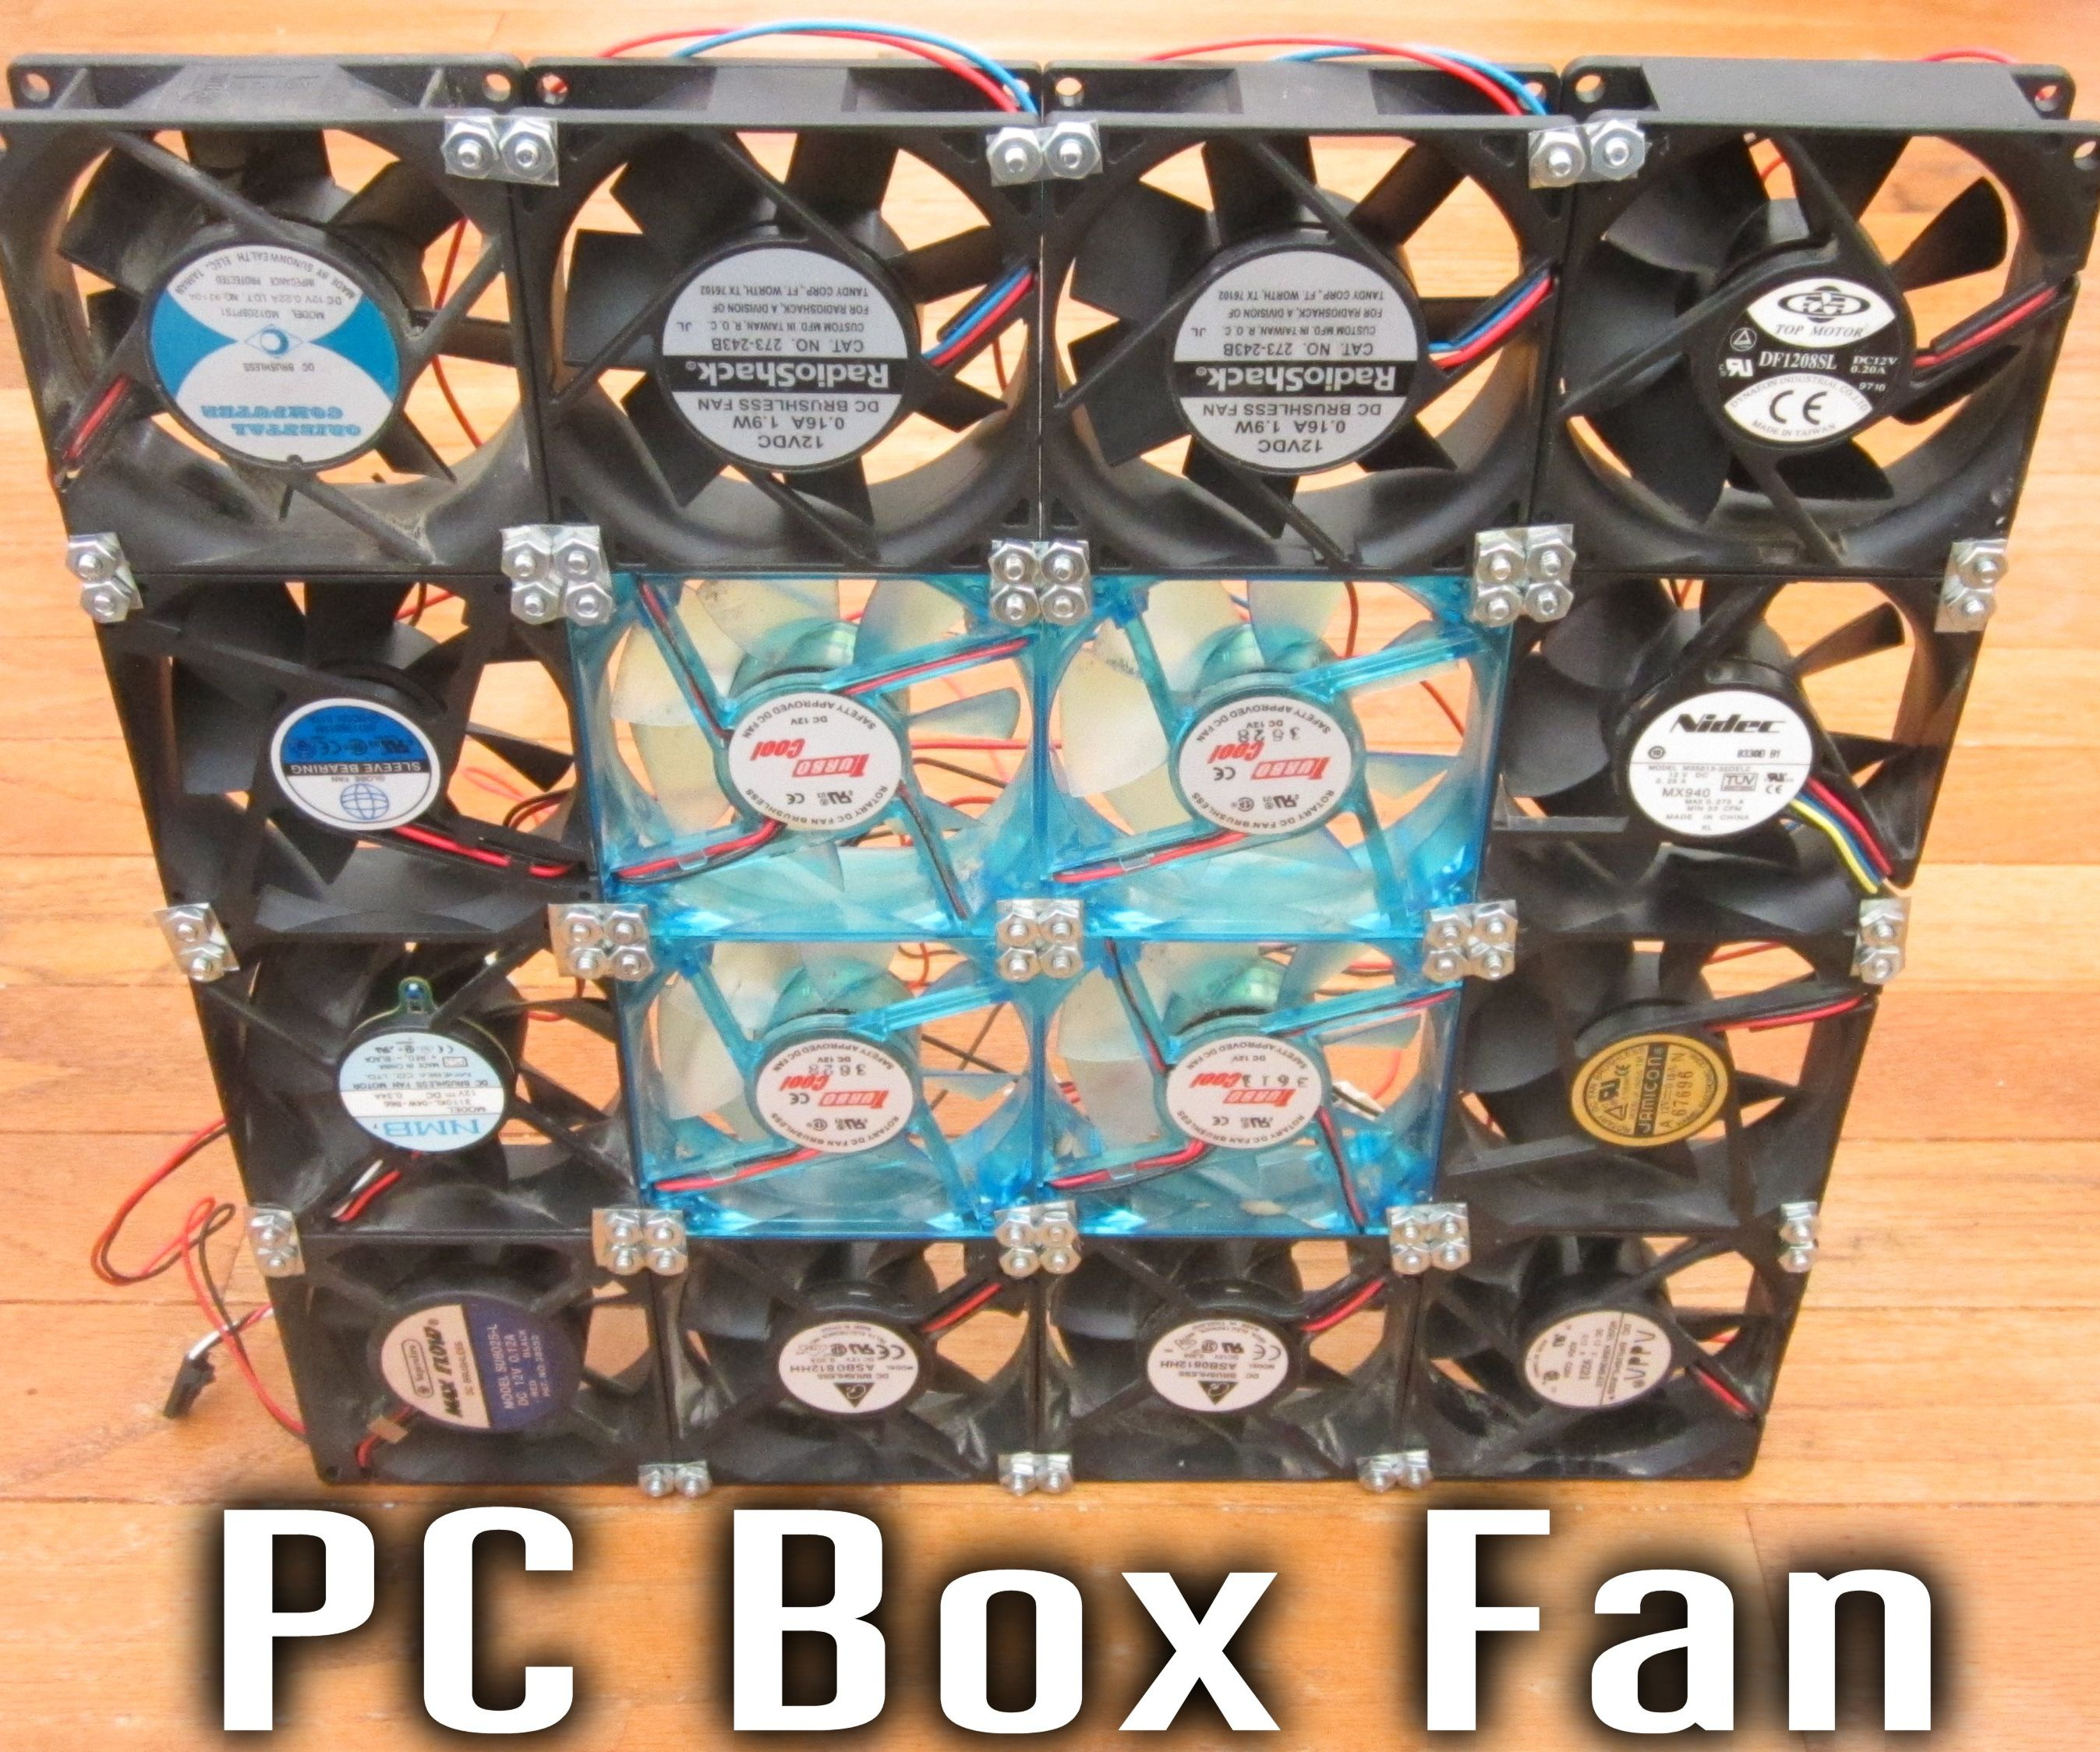 PC Box Fan